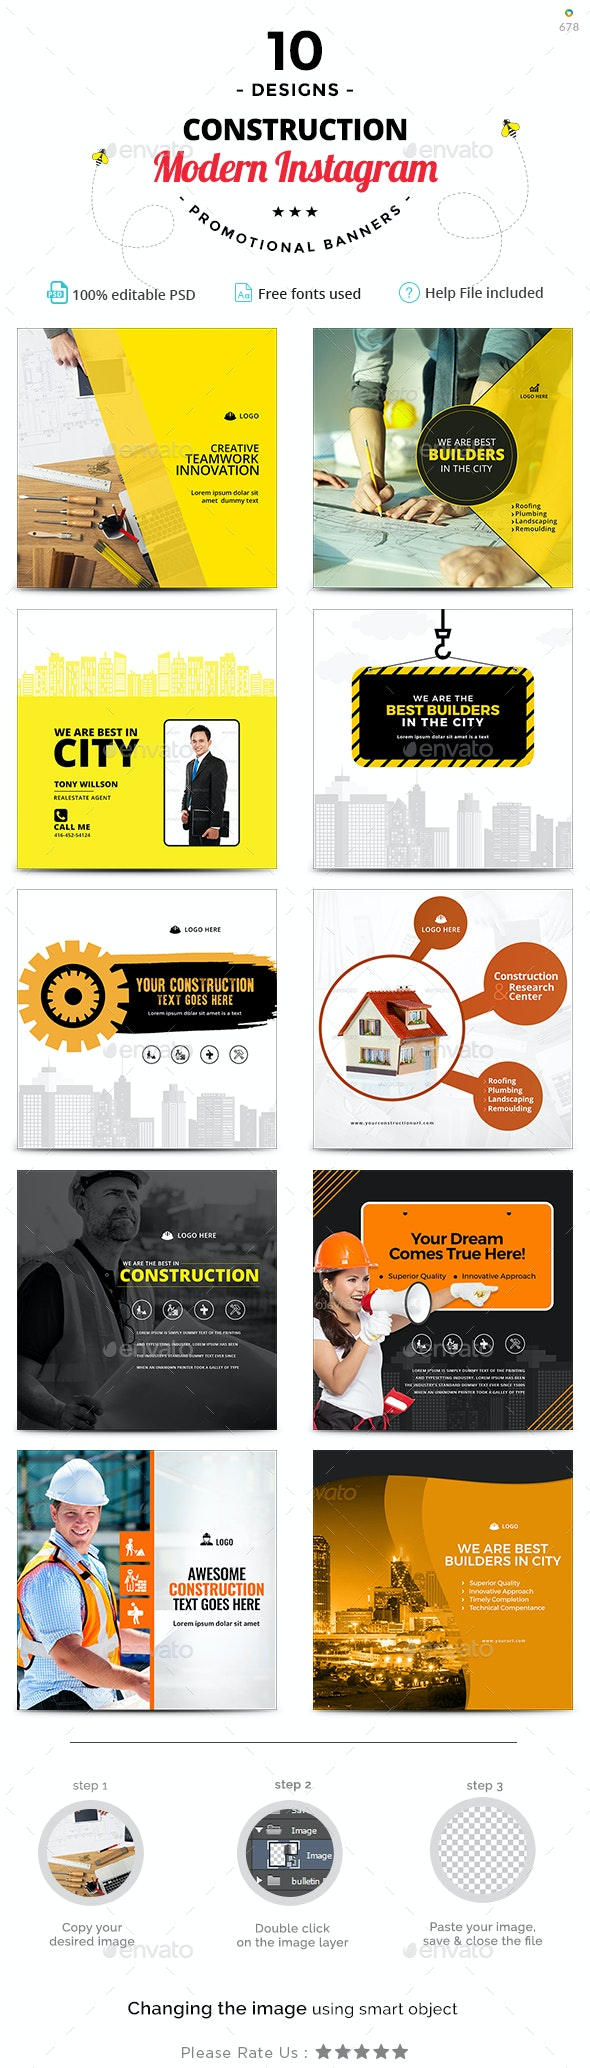 Construction Instagram Templates - 10 Designs - Miscellaneous Social Media